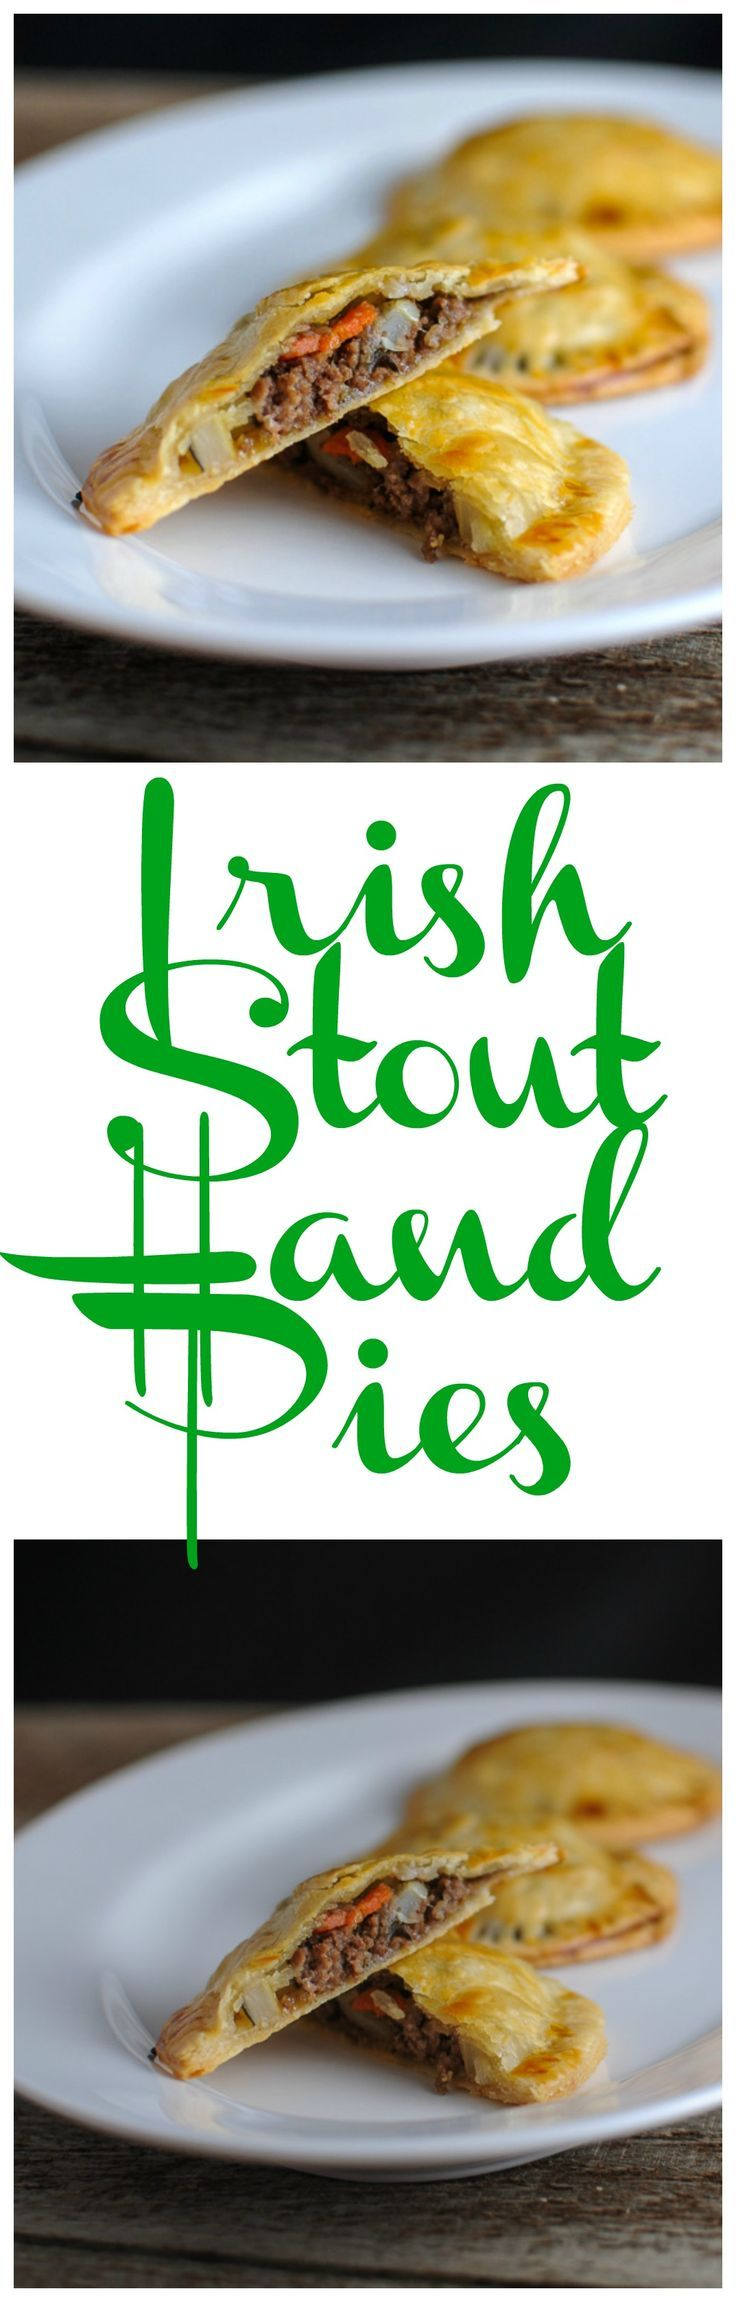 Irish Stout Hand Pies - ground beef, onion, carrot, stout beer in a pastry crust!